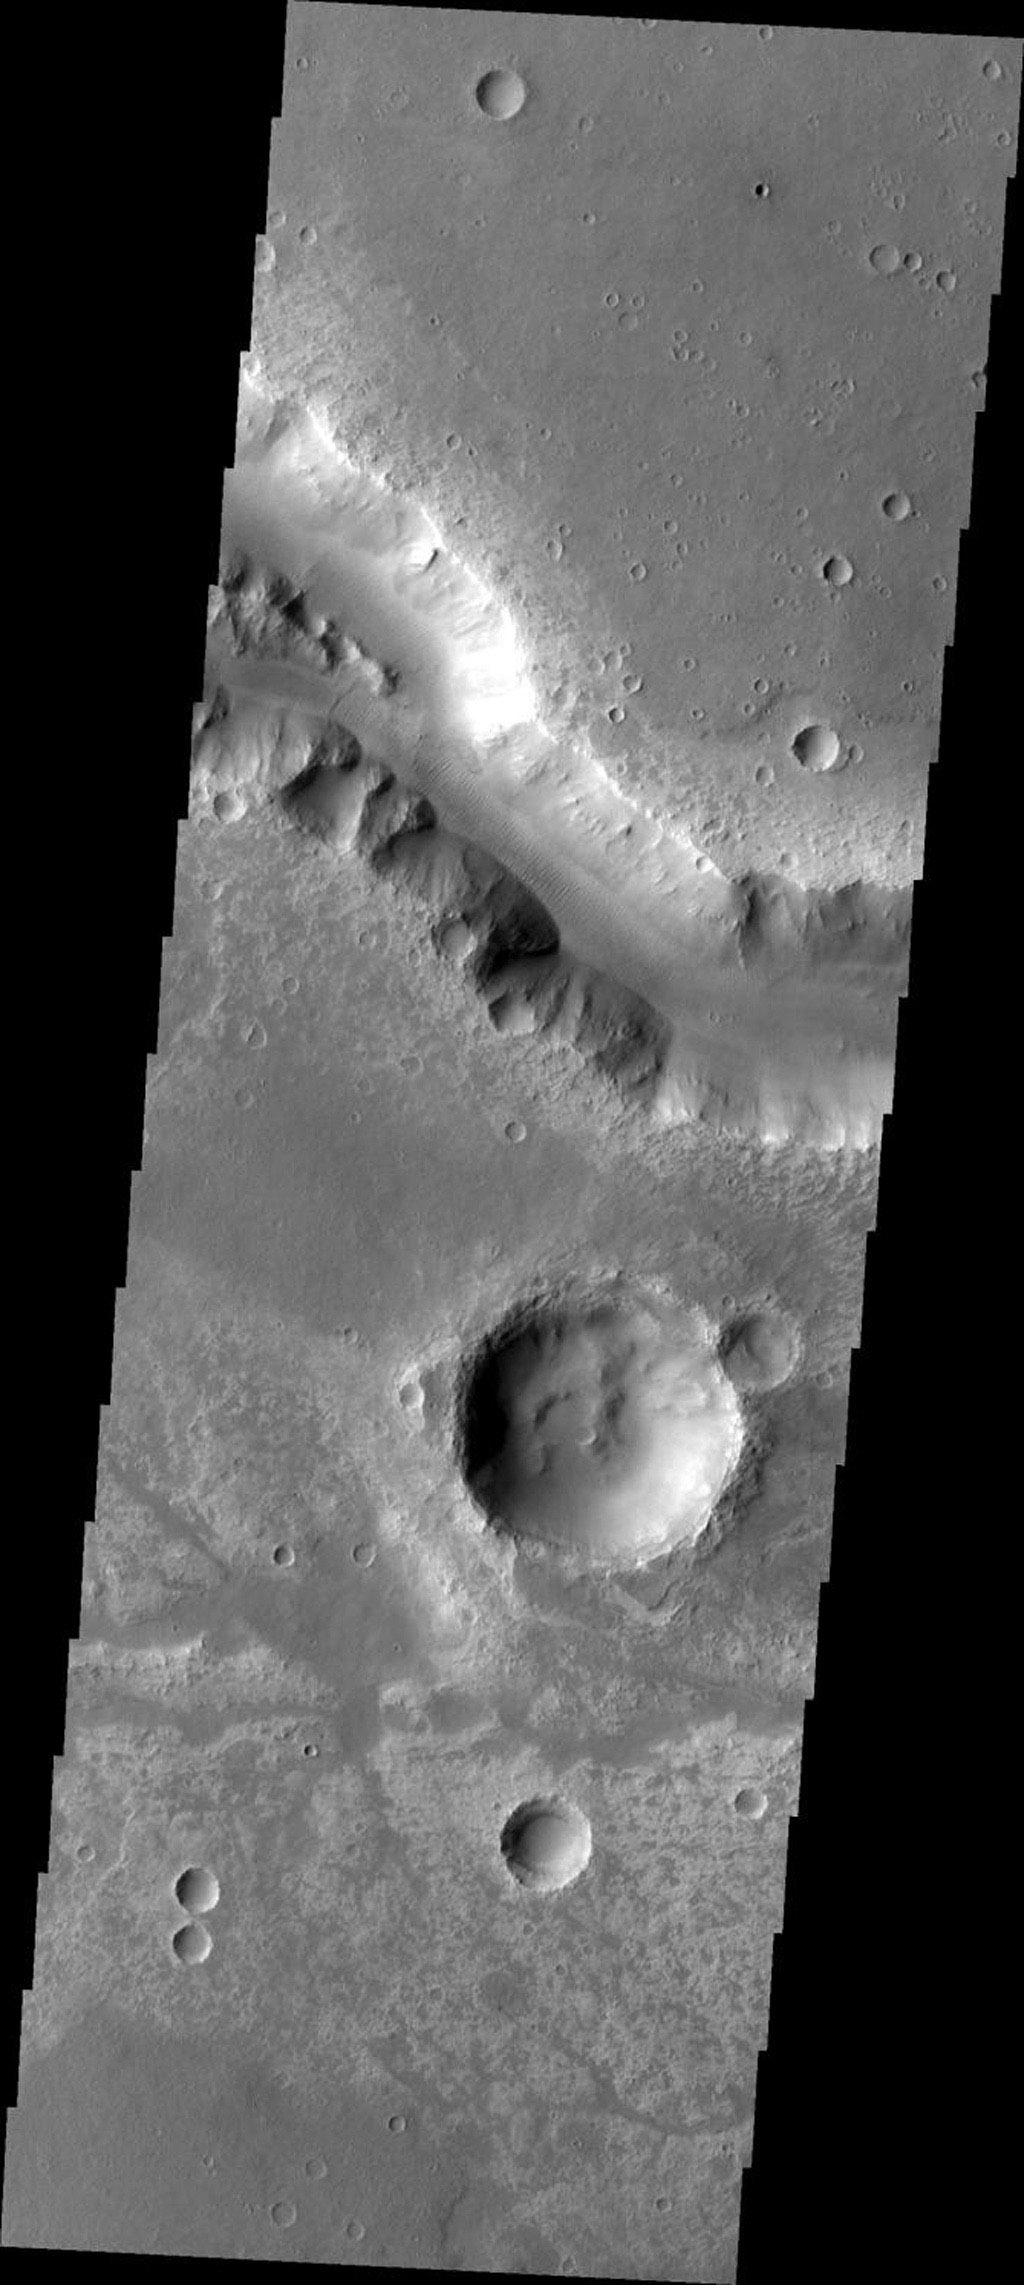 This image from NASA's Mars Odyssey spacecraft shows Her Desher Vallis, a medium-sized channel on Mars.